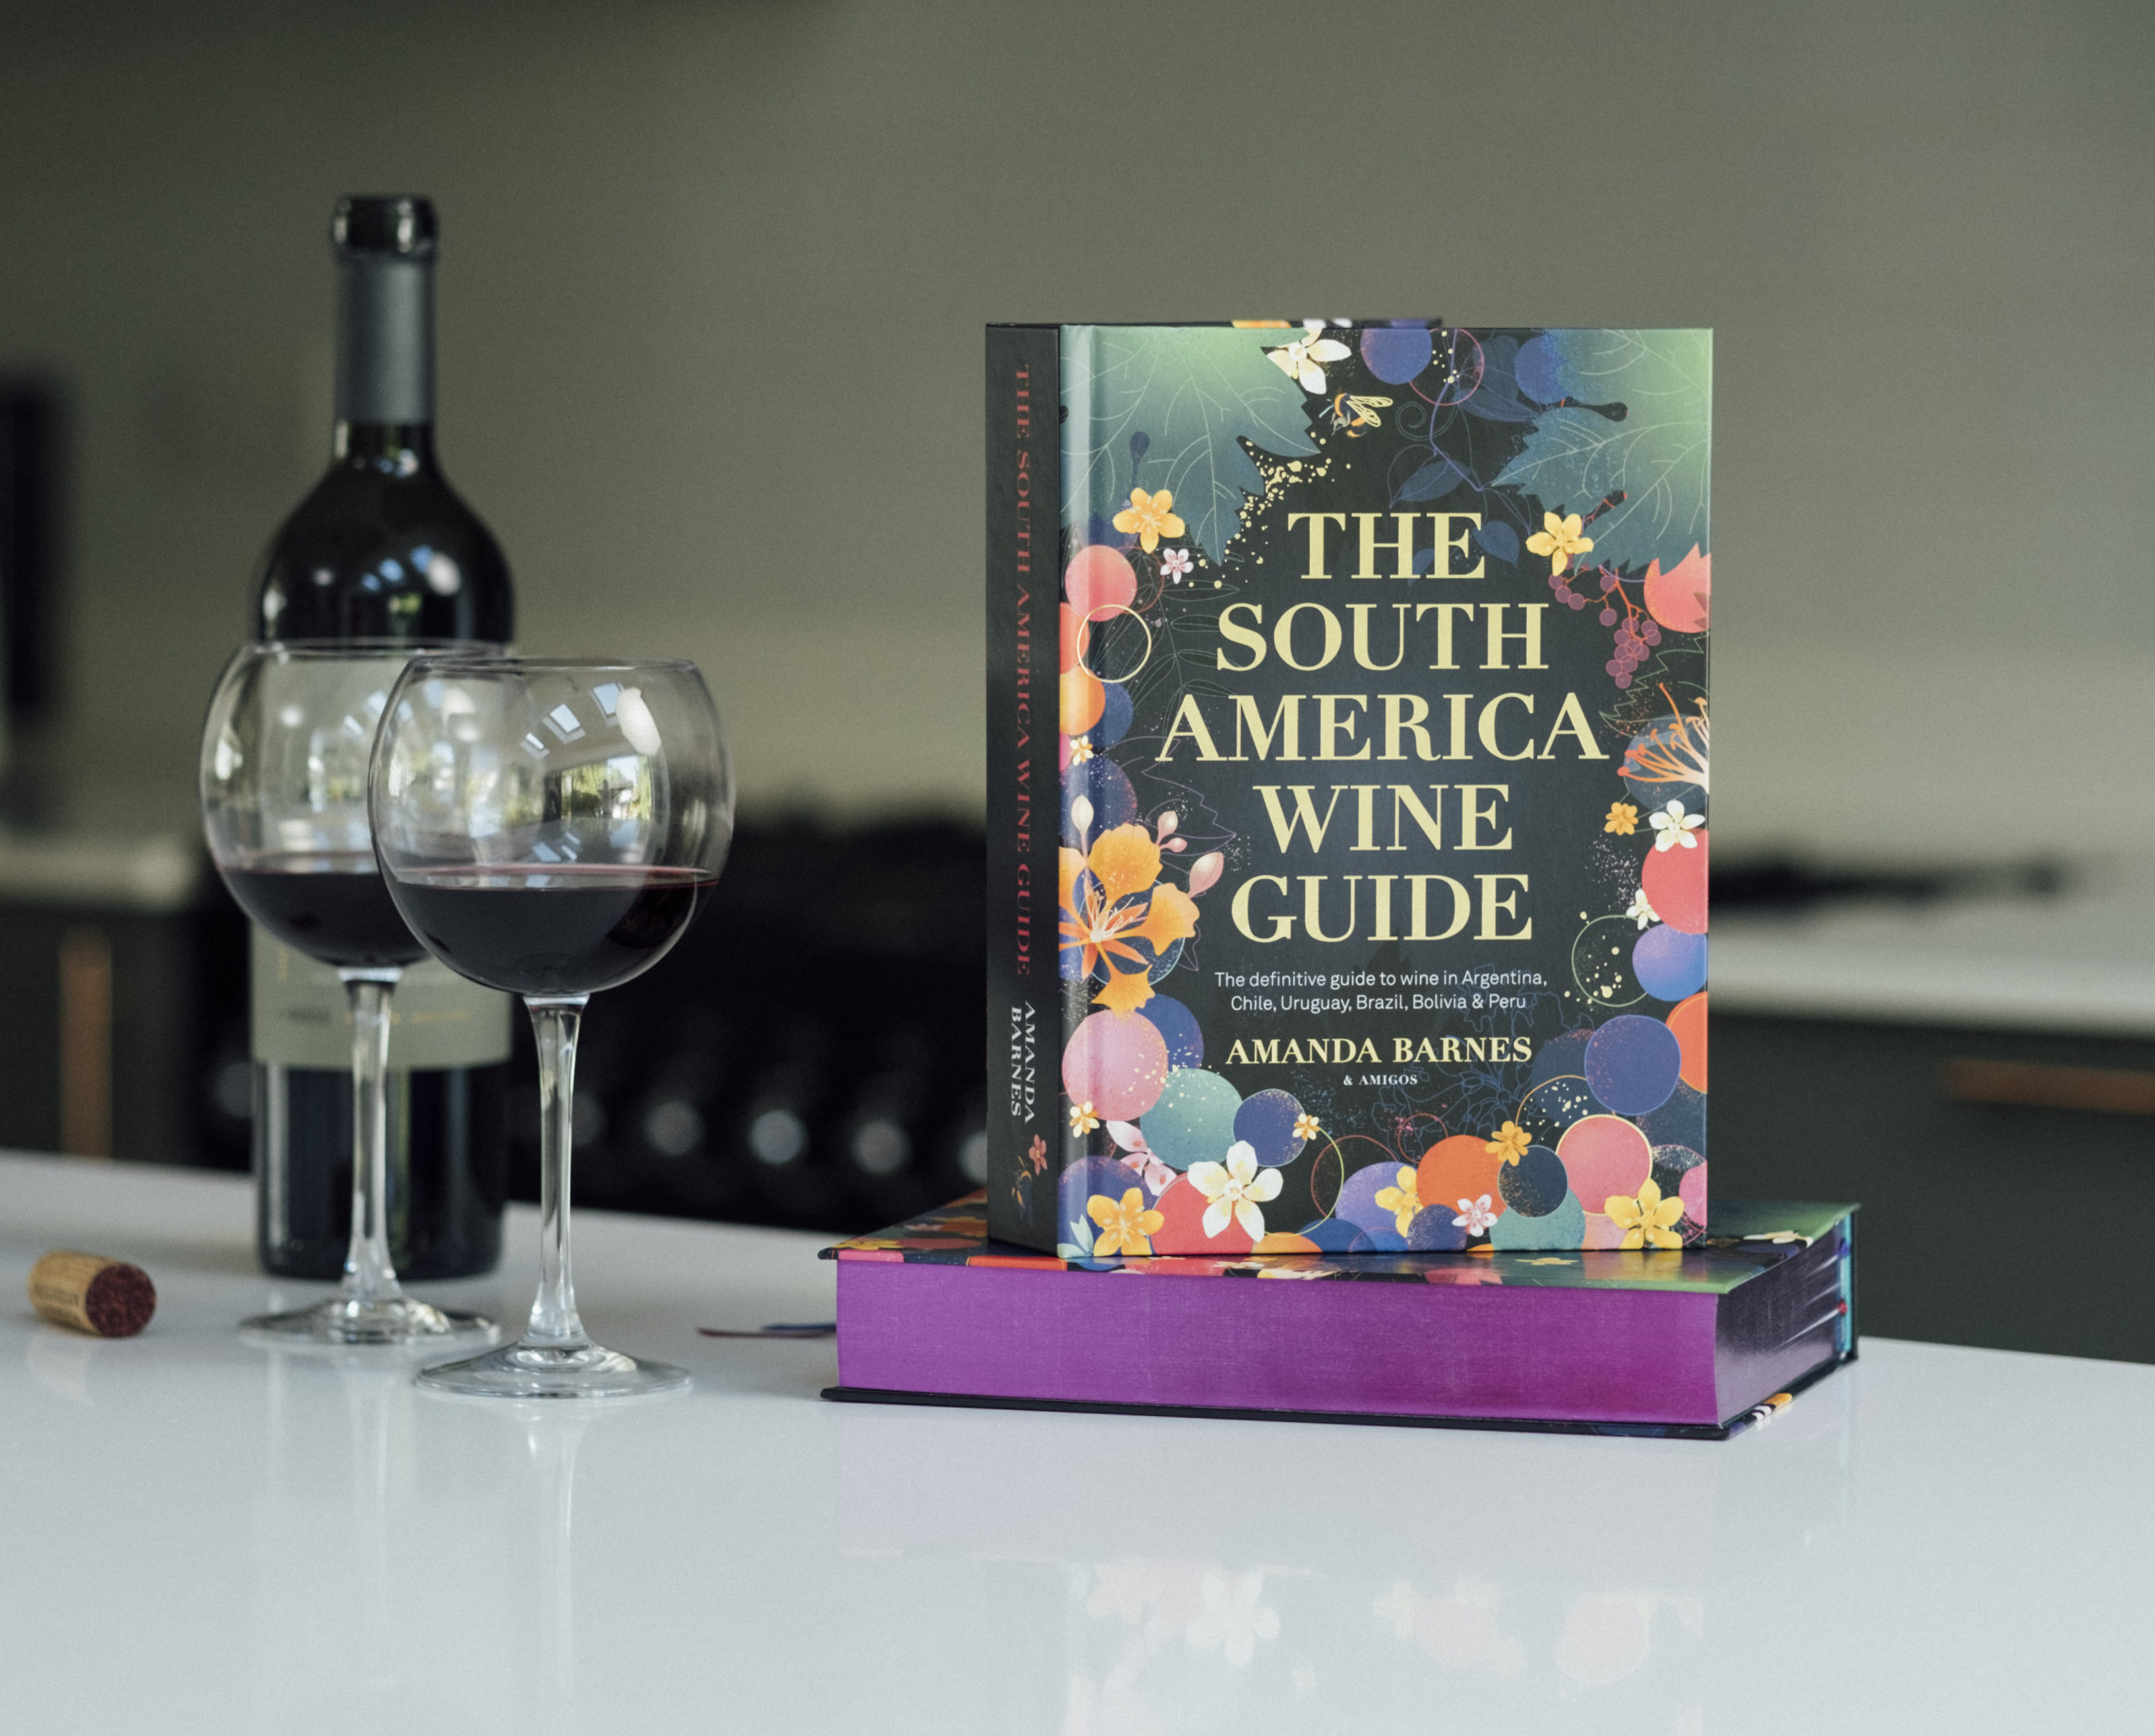 World's most comprehensive guide to South American wine published